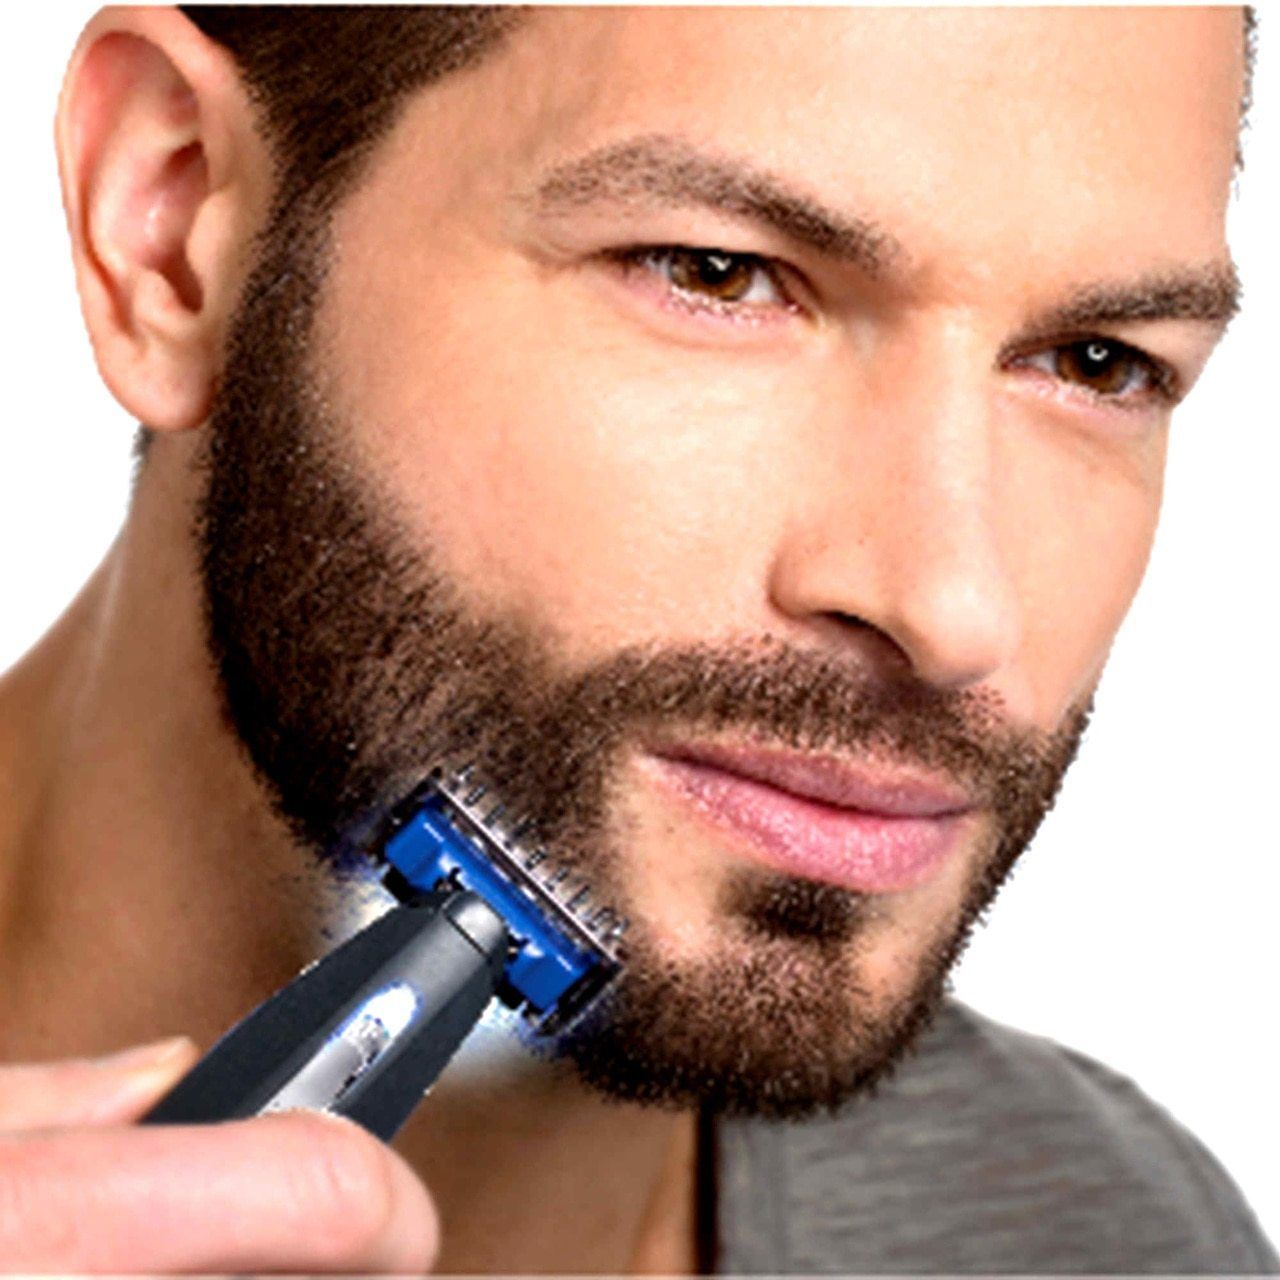 SKRTEN Smart Razor For Men Rechargeable Shaves